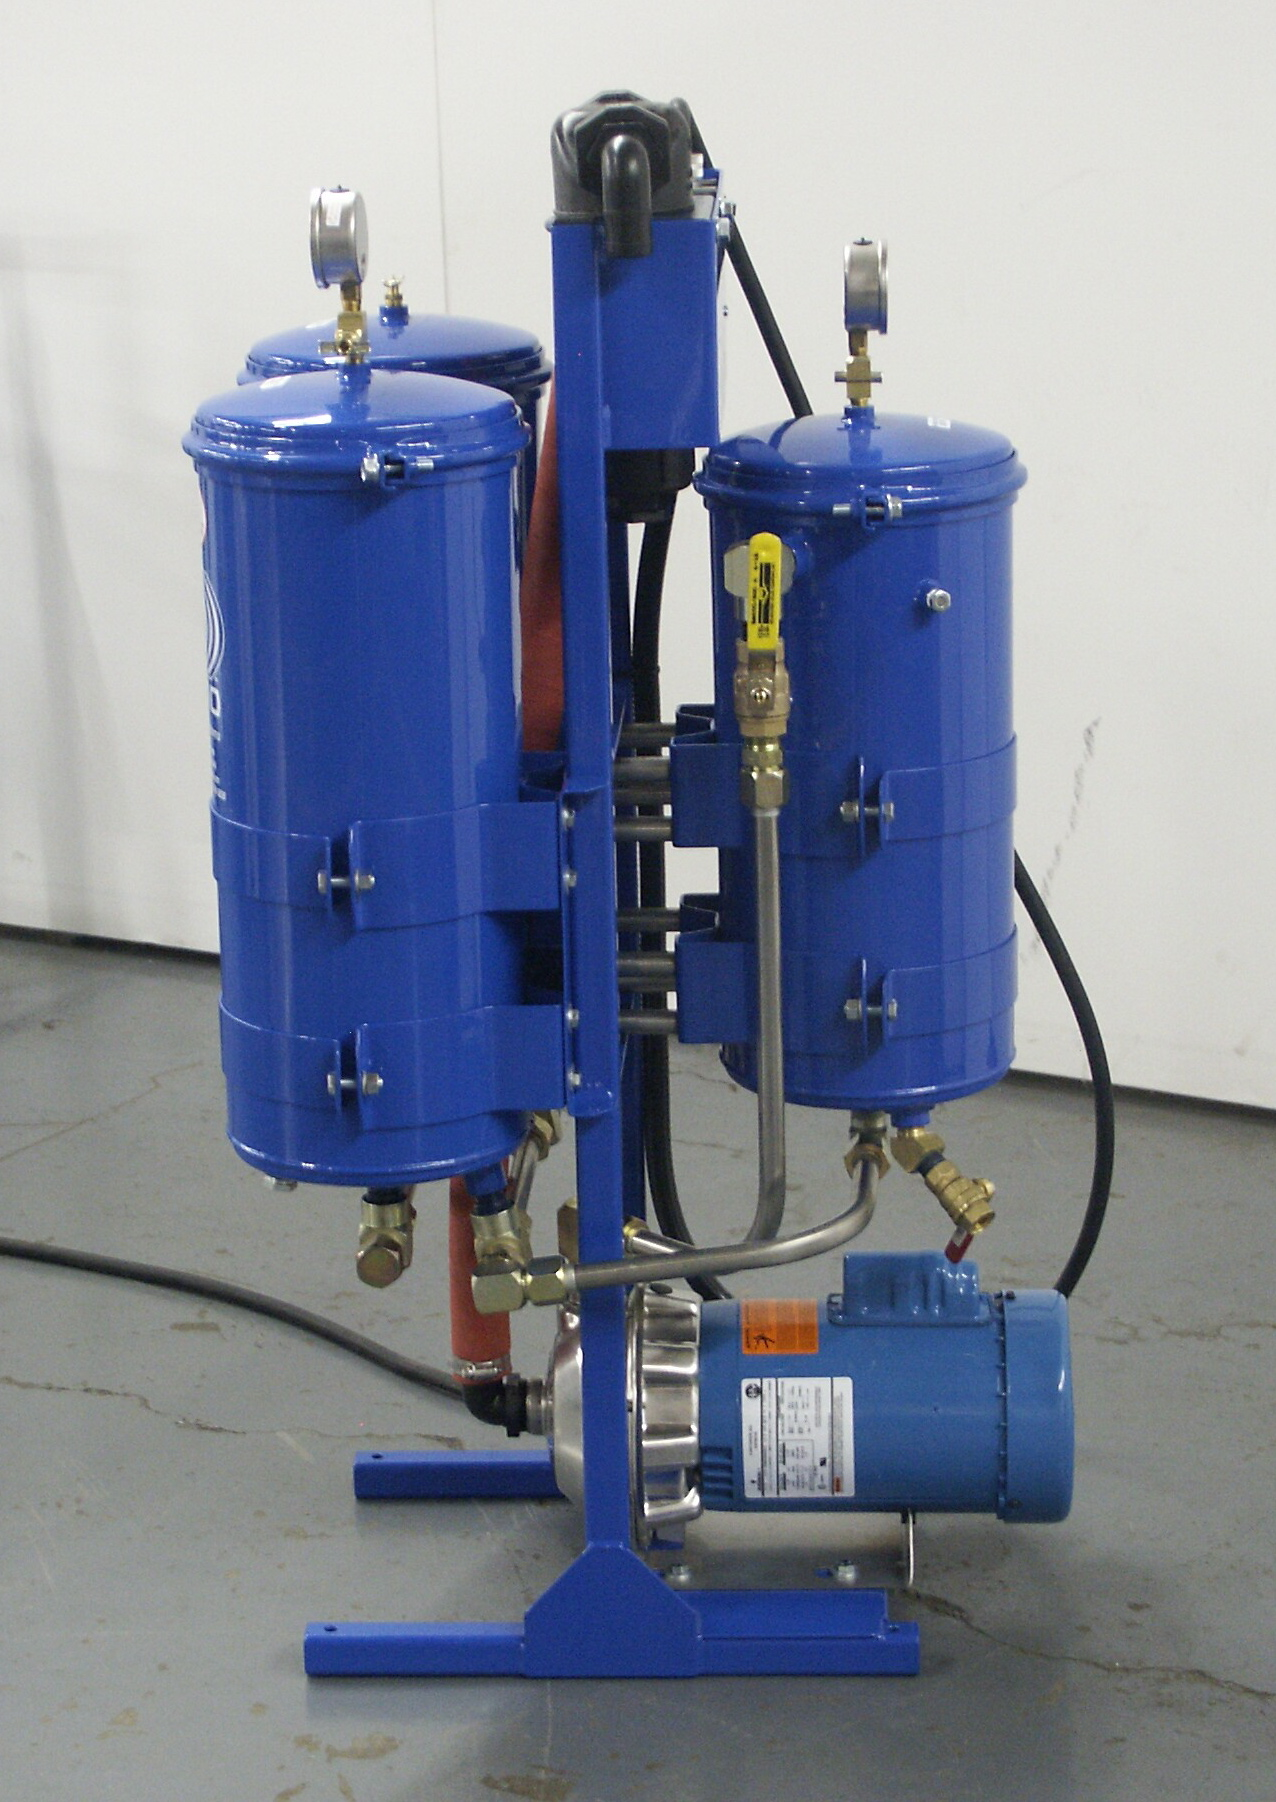 Additional product image of our Dedicated Oil Filtration Systems.